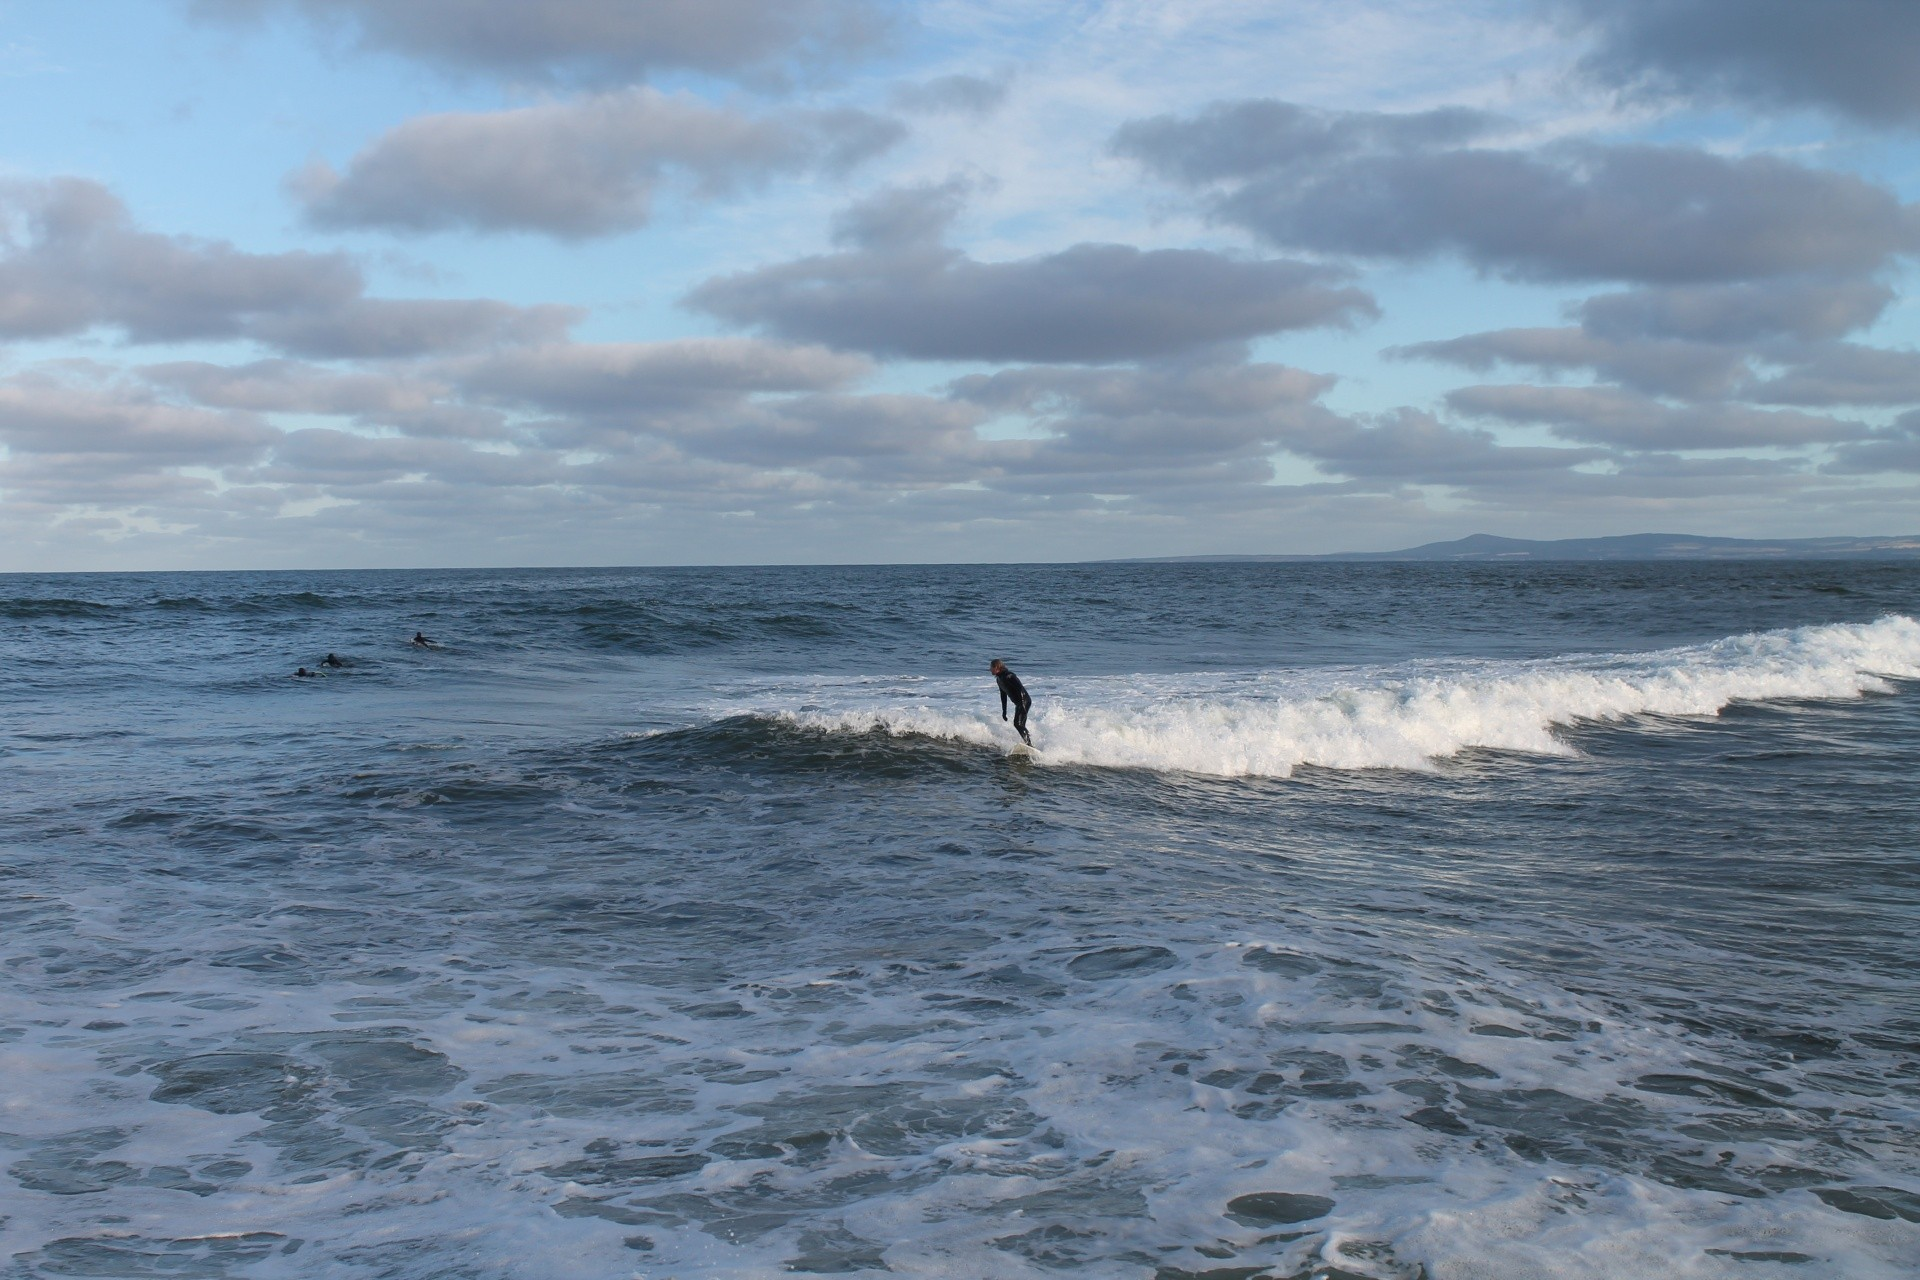 chris cowe (jebus)'s photo of Lossiemouth